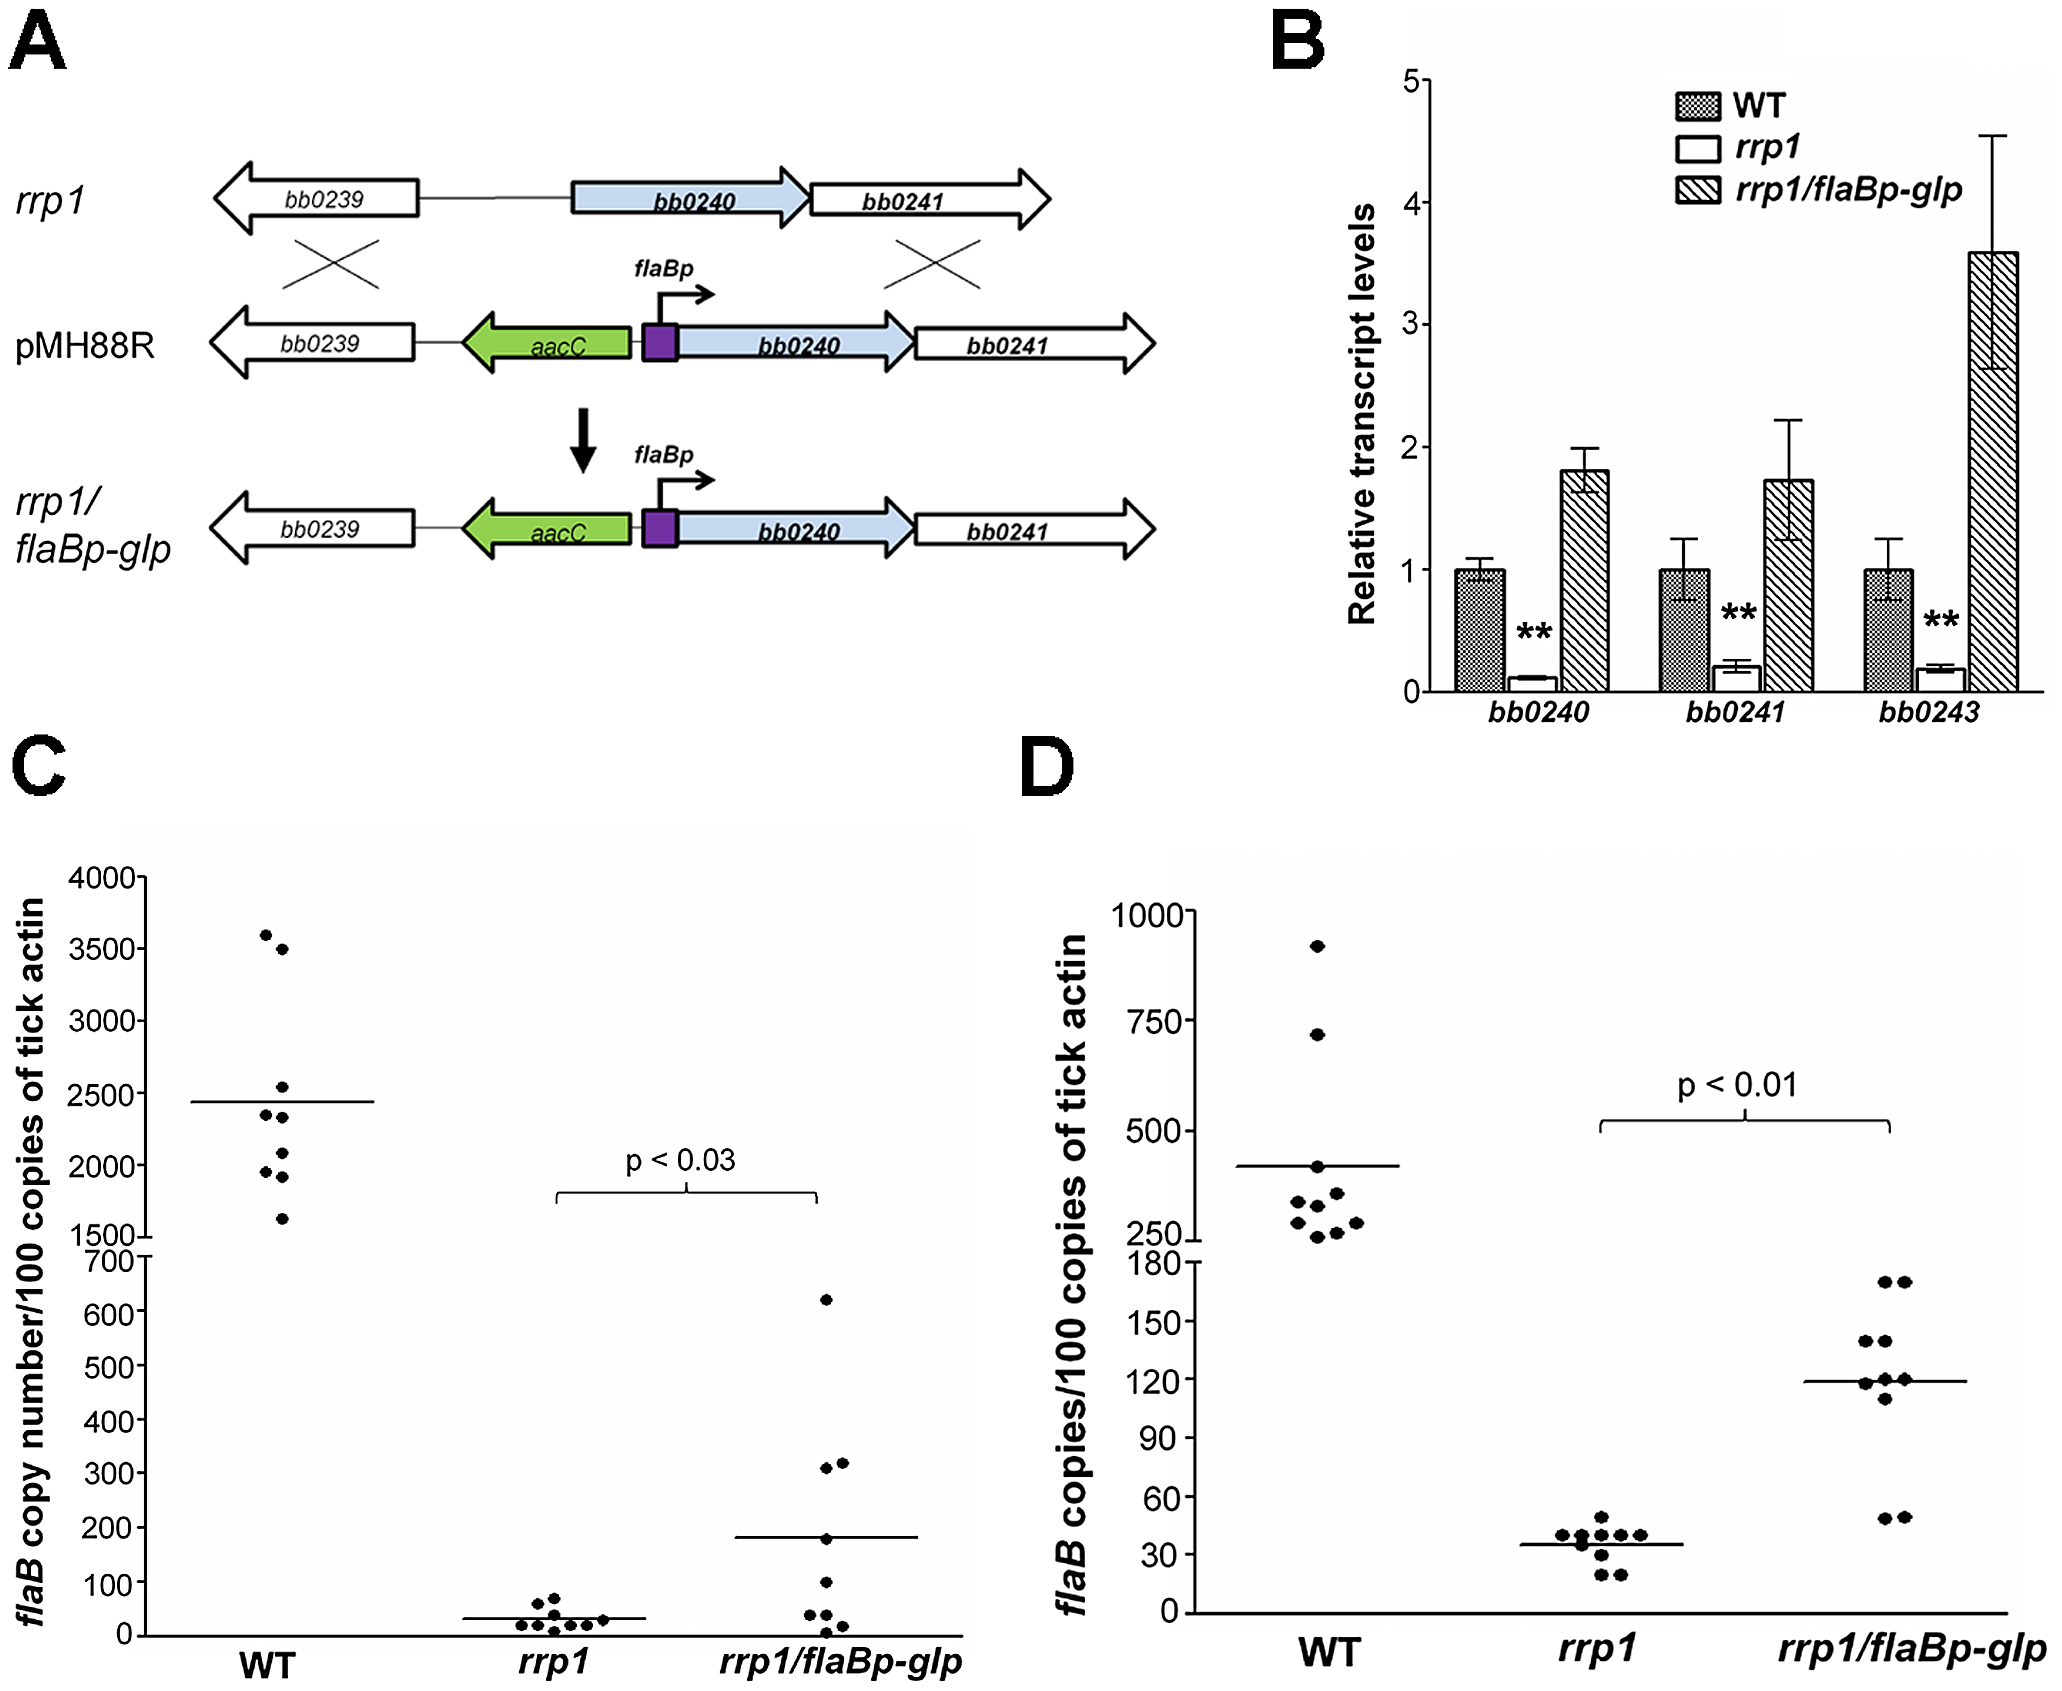 Constitutive expression of glycerol metabolism genes in the <i>rrp1</i> mutant partially restored spirochetal survival in ticks.